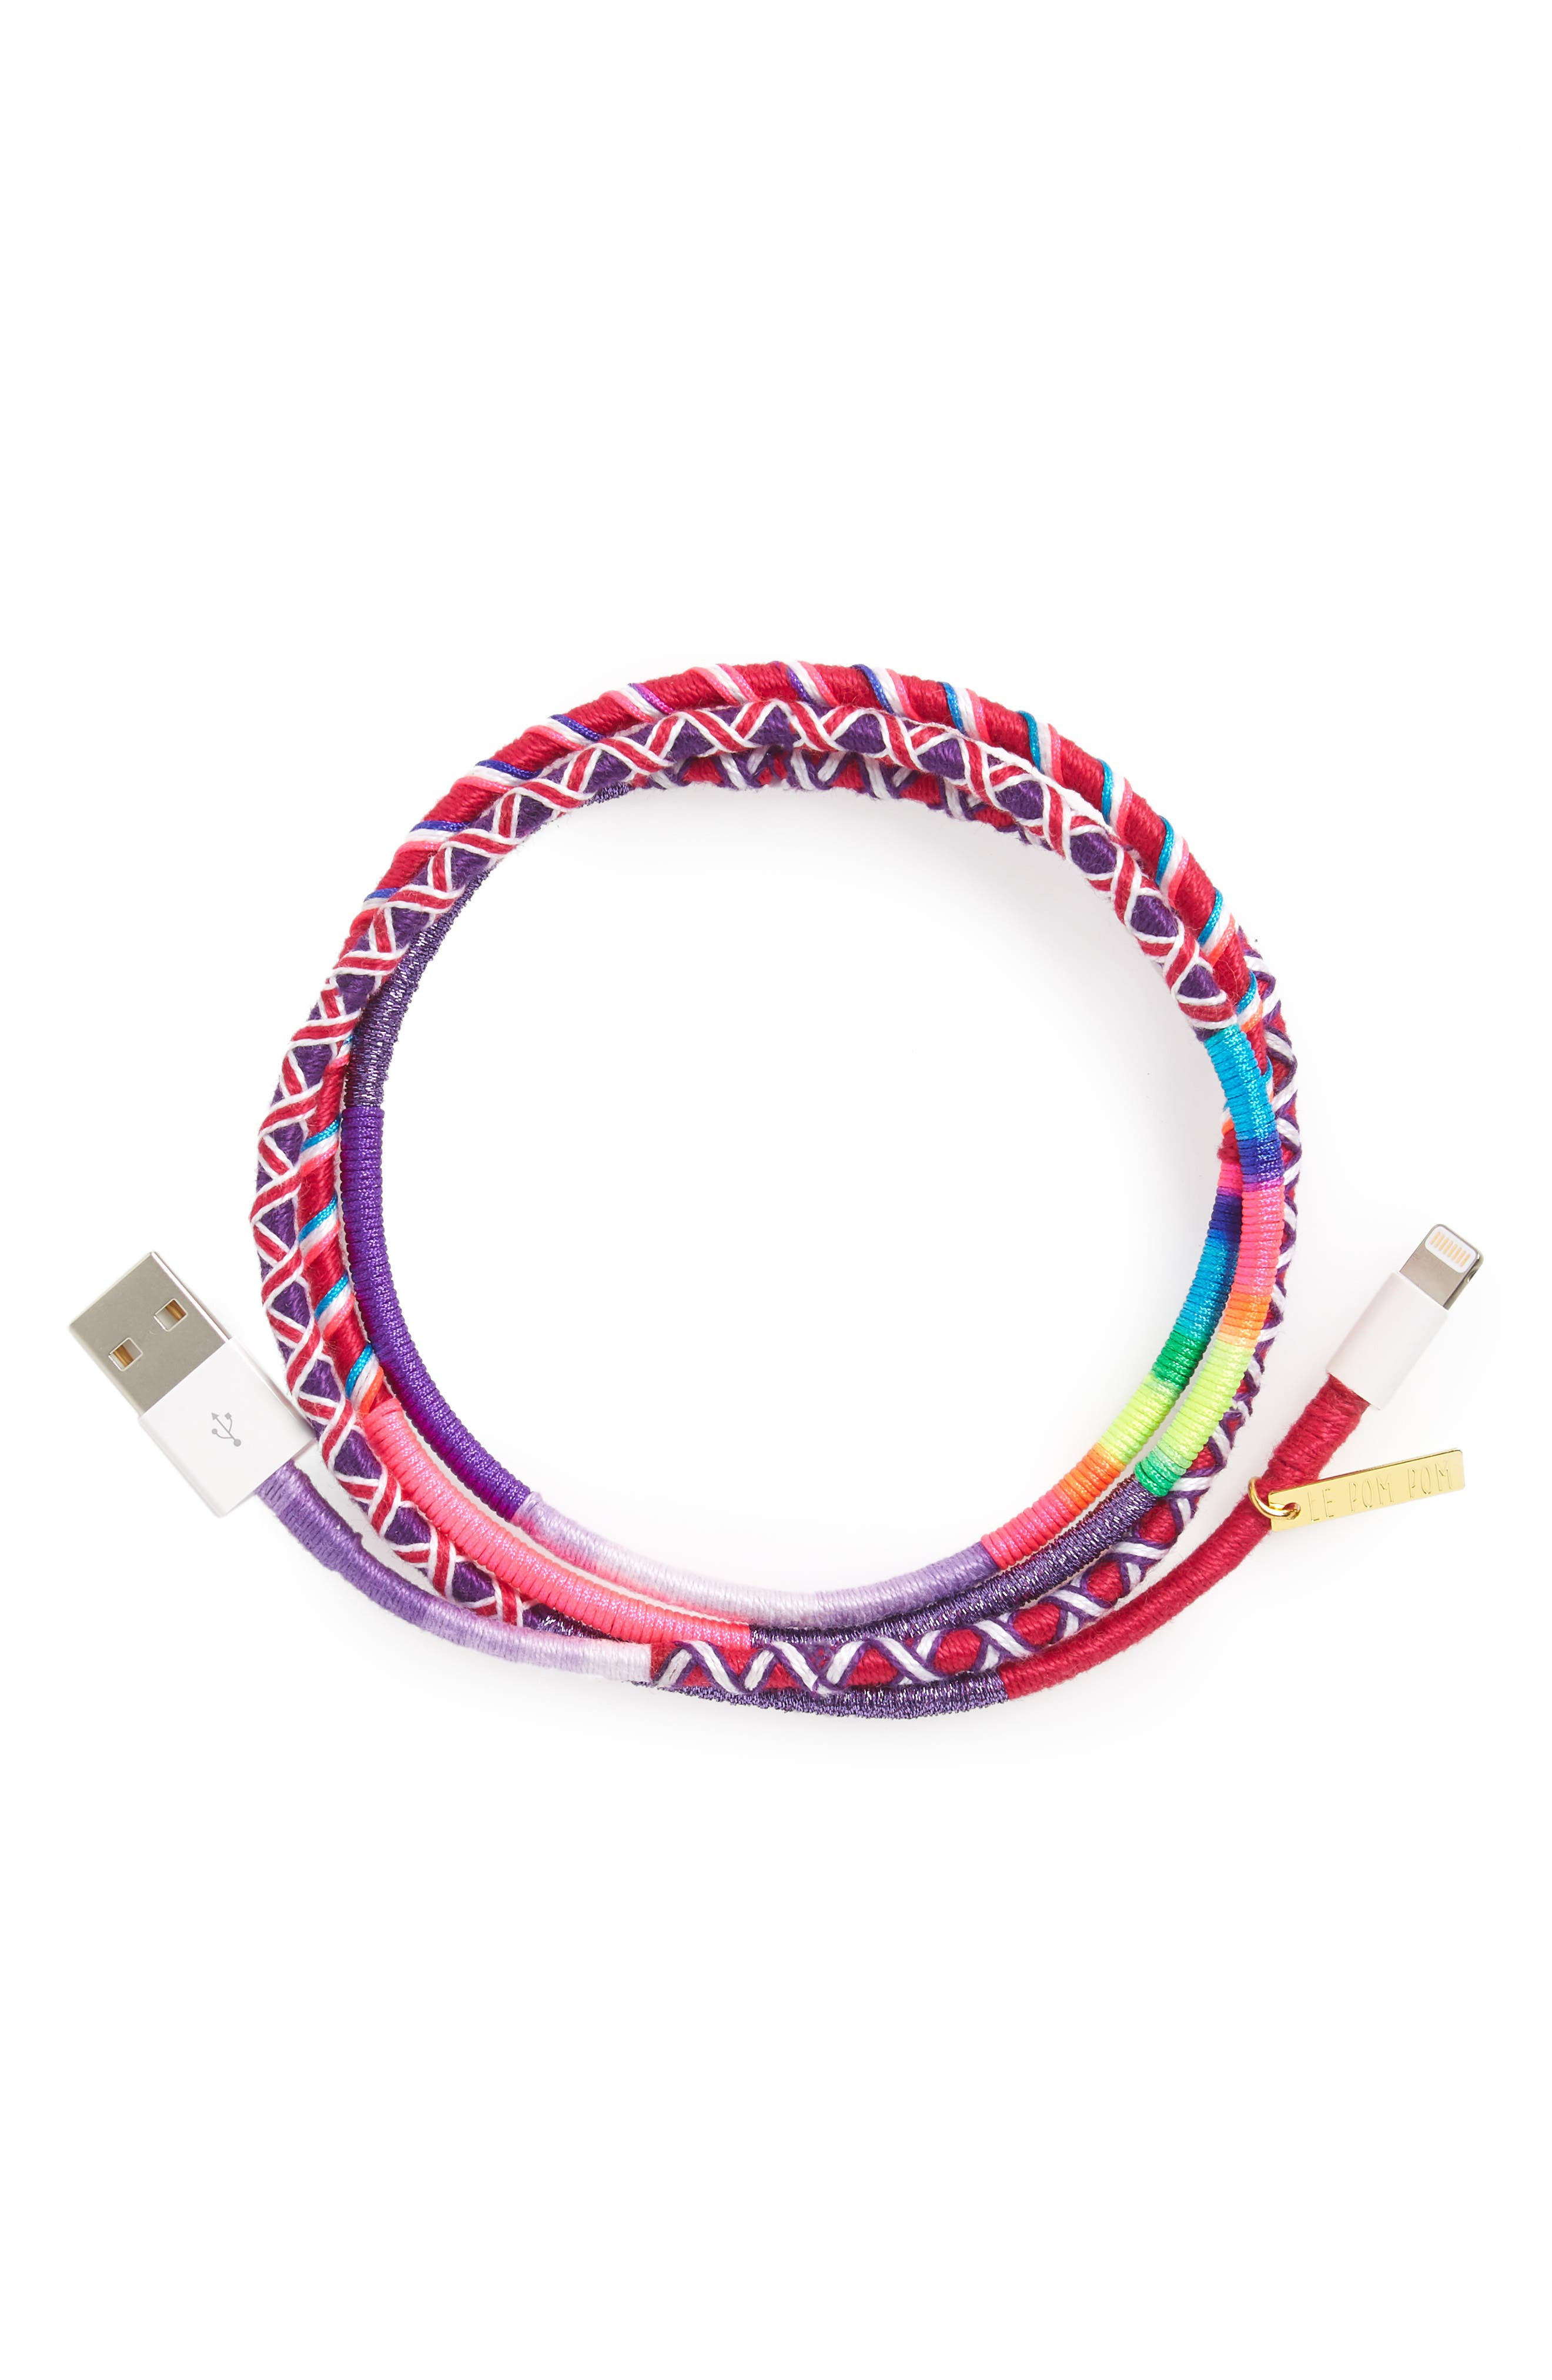 Vicky Hand-Wrapped iPhone Charging Cord,                         Main,                         color,